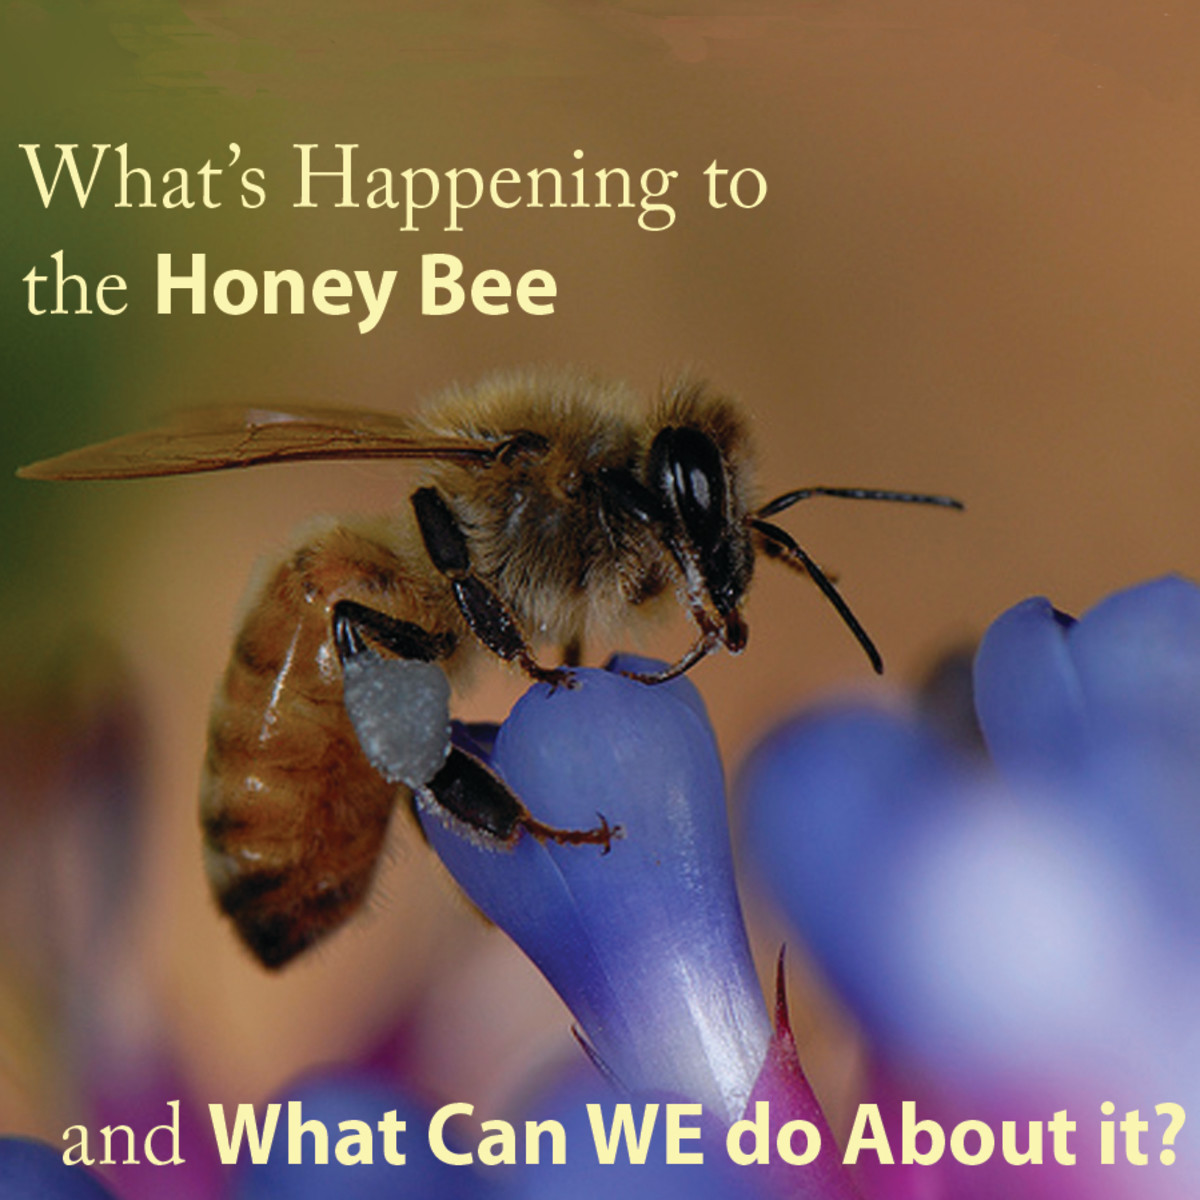 Colony Collapse Disorder: What is Happening to the Bees?